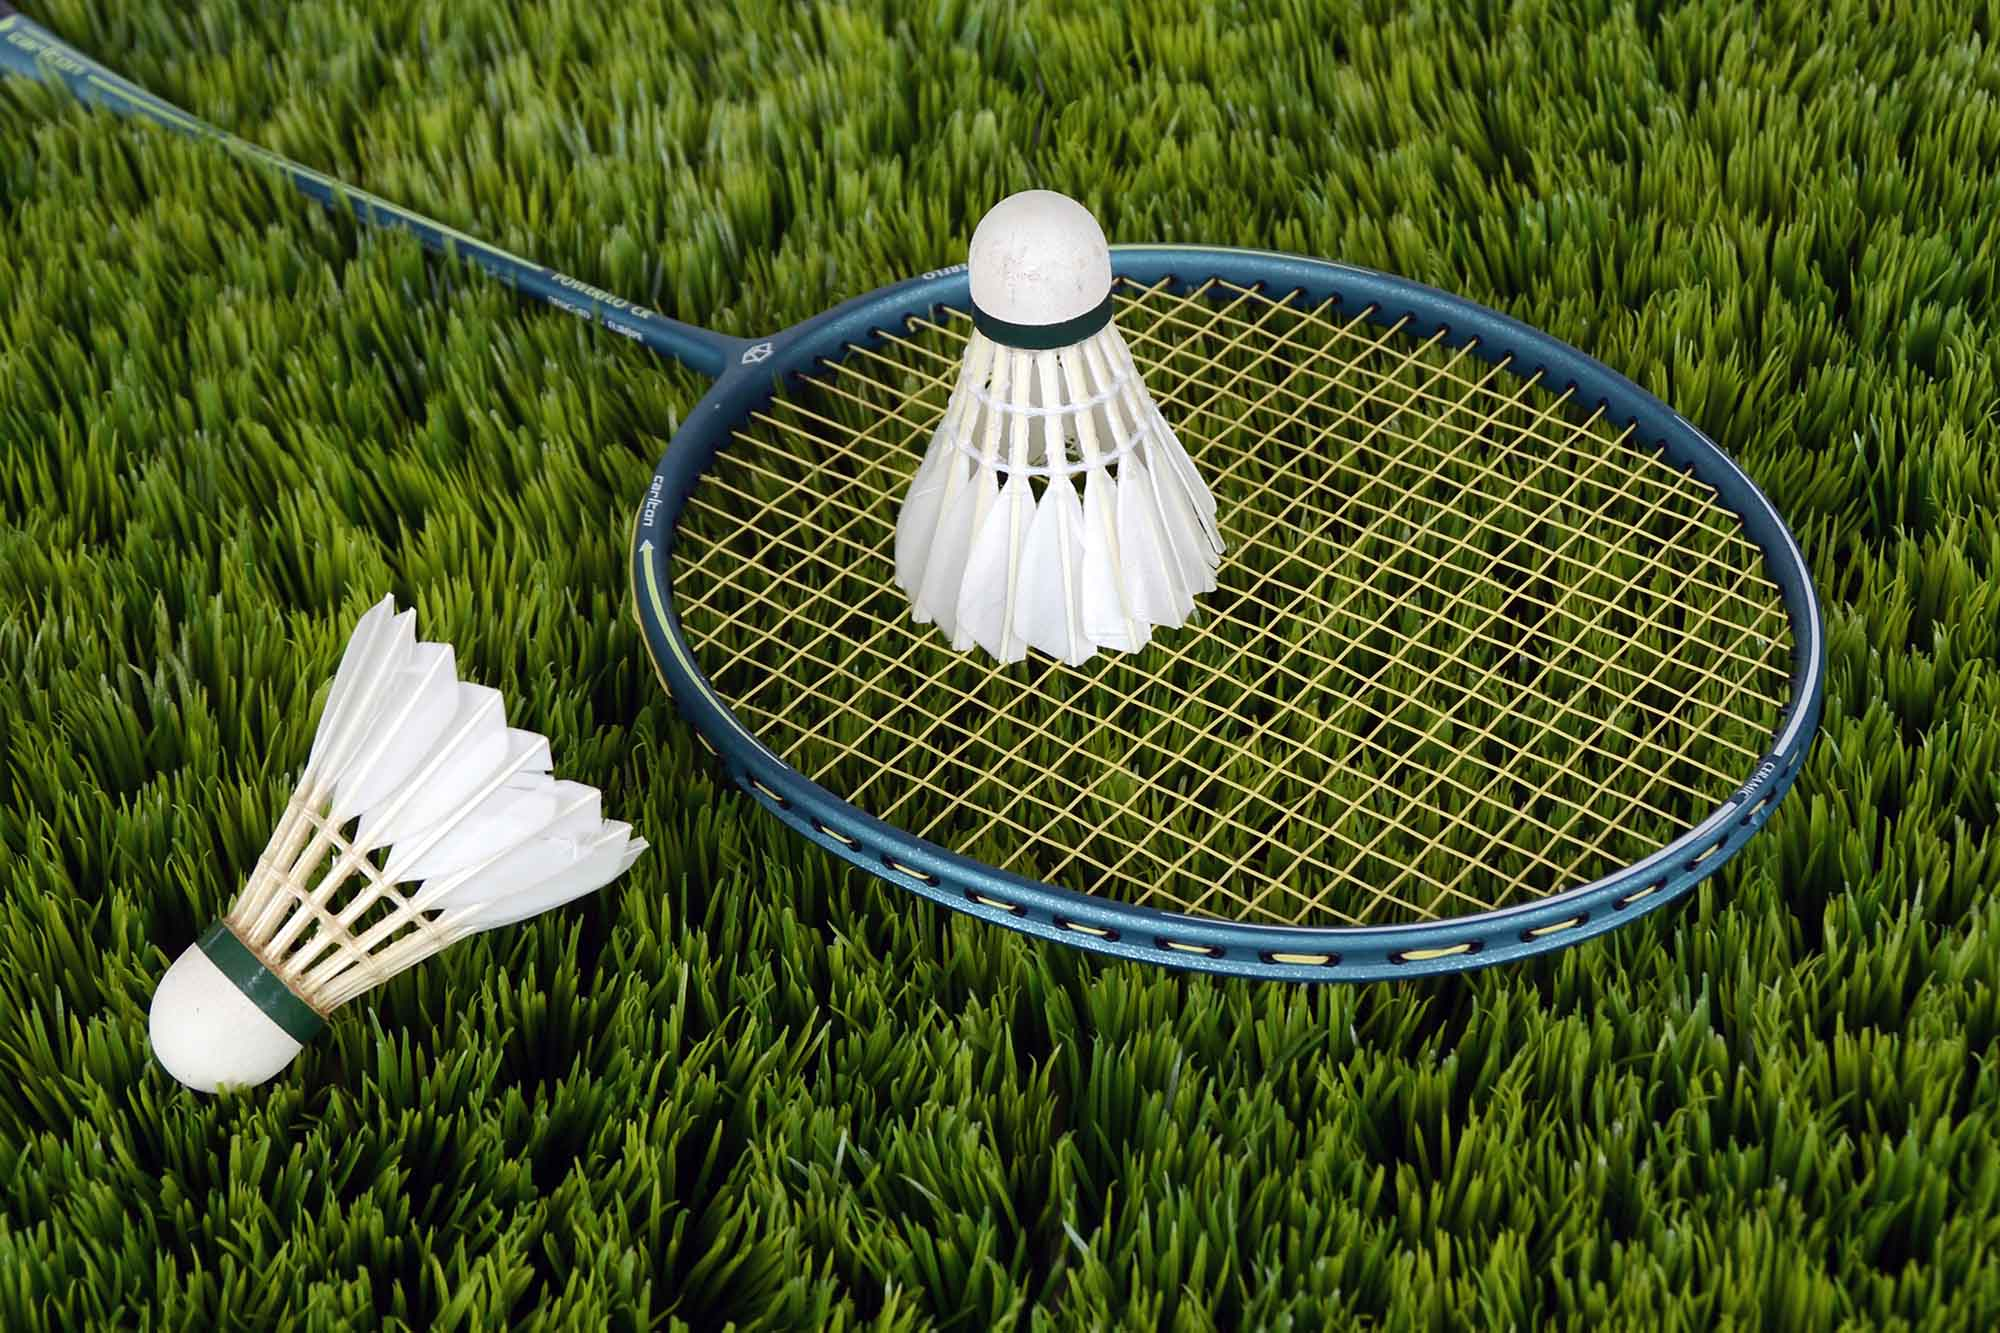 0346a0cd96c These 5 Badminton Rackets Will Help You Get Better At Doing The Smash